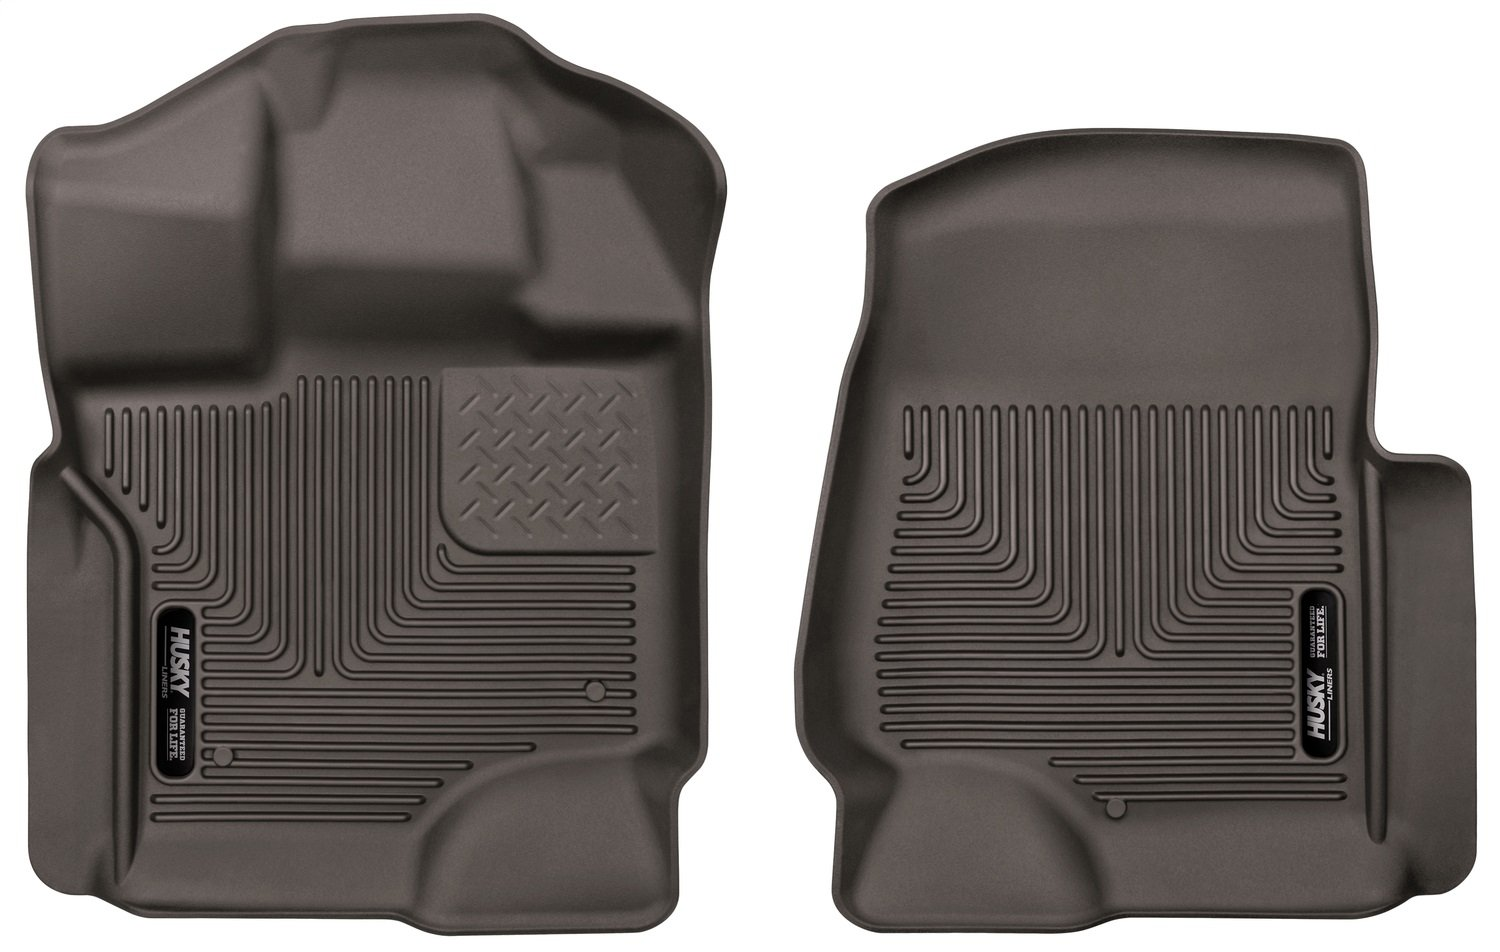 Husky Liners Front 53360 X-act Contour SeriesFront Floor Liners, Cocoa for 2017 Ford F-250/350 Super Duty Crew Cabs, 2 Pack